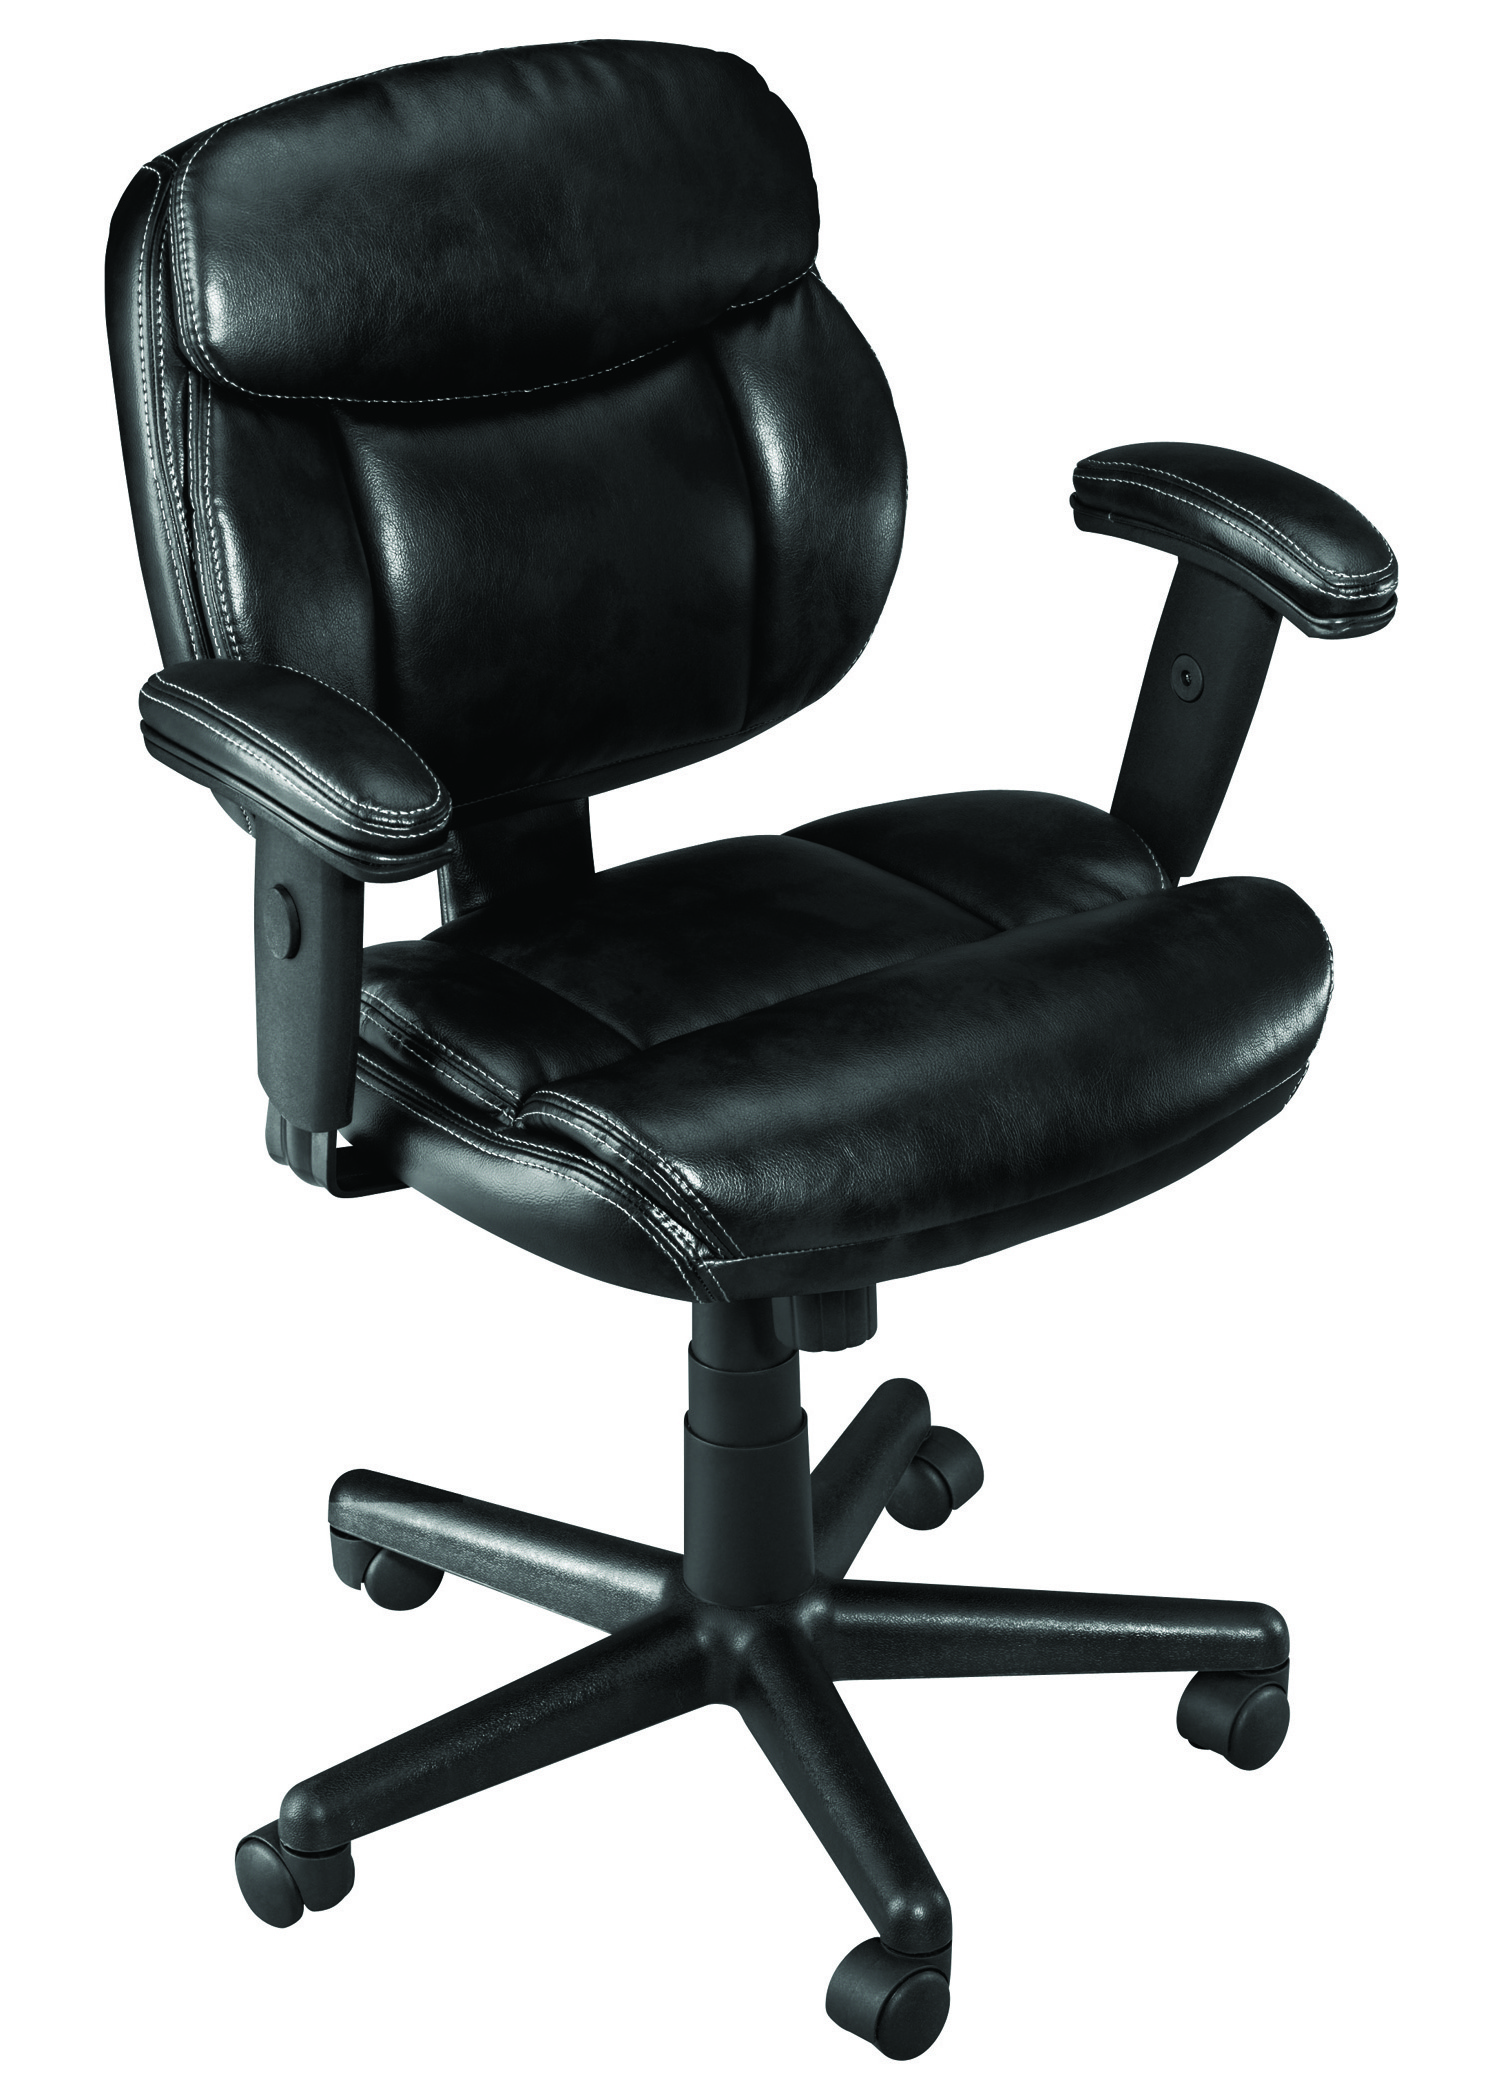 Brenton Studio® Ariel Bonded Leather Low-Back Task Chair, Black